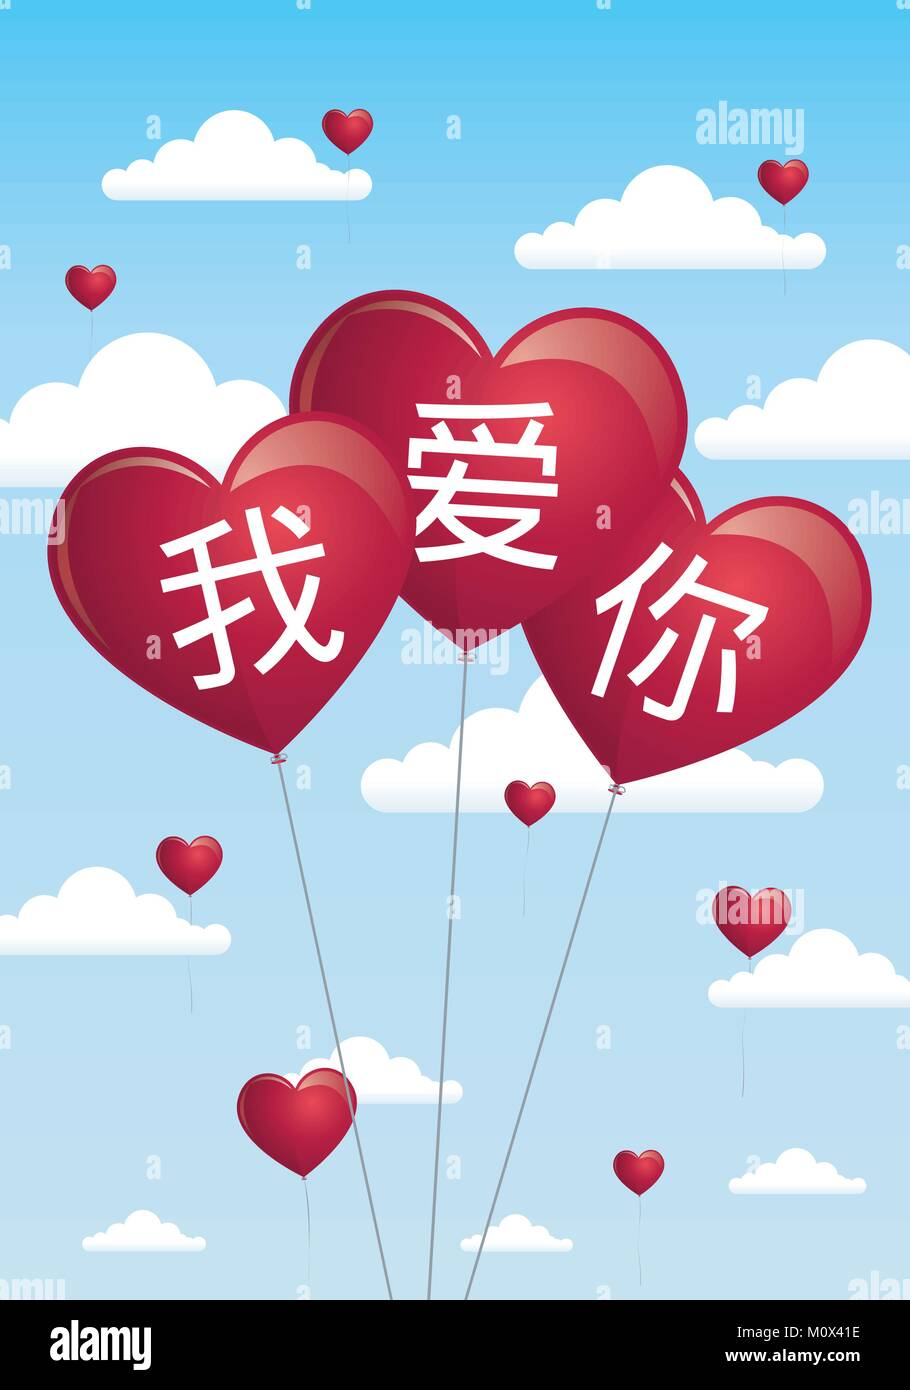 Chinese symbols for i love you gallery symbol and sign ideas mandarin chinese symbol stock photos mandarin chinese symbol phrase i love you in mandarin chinese language biocorpaavc